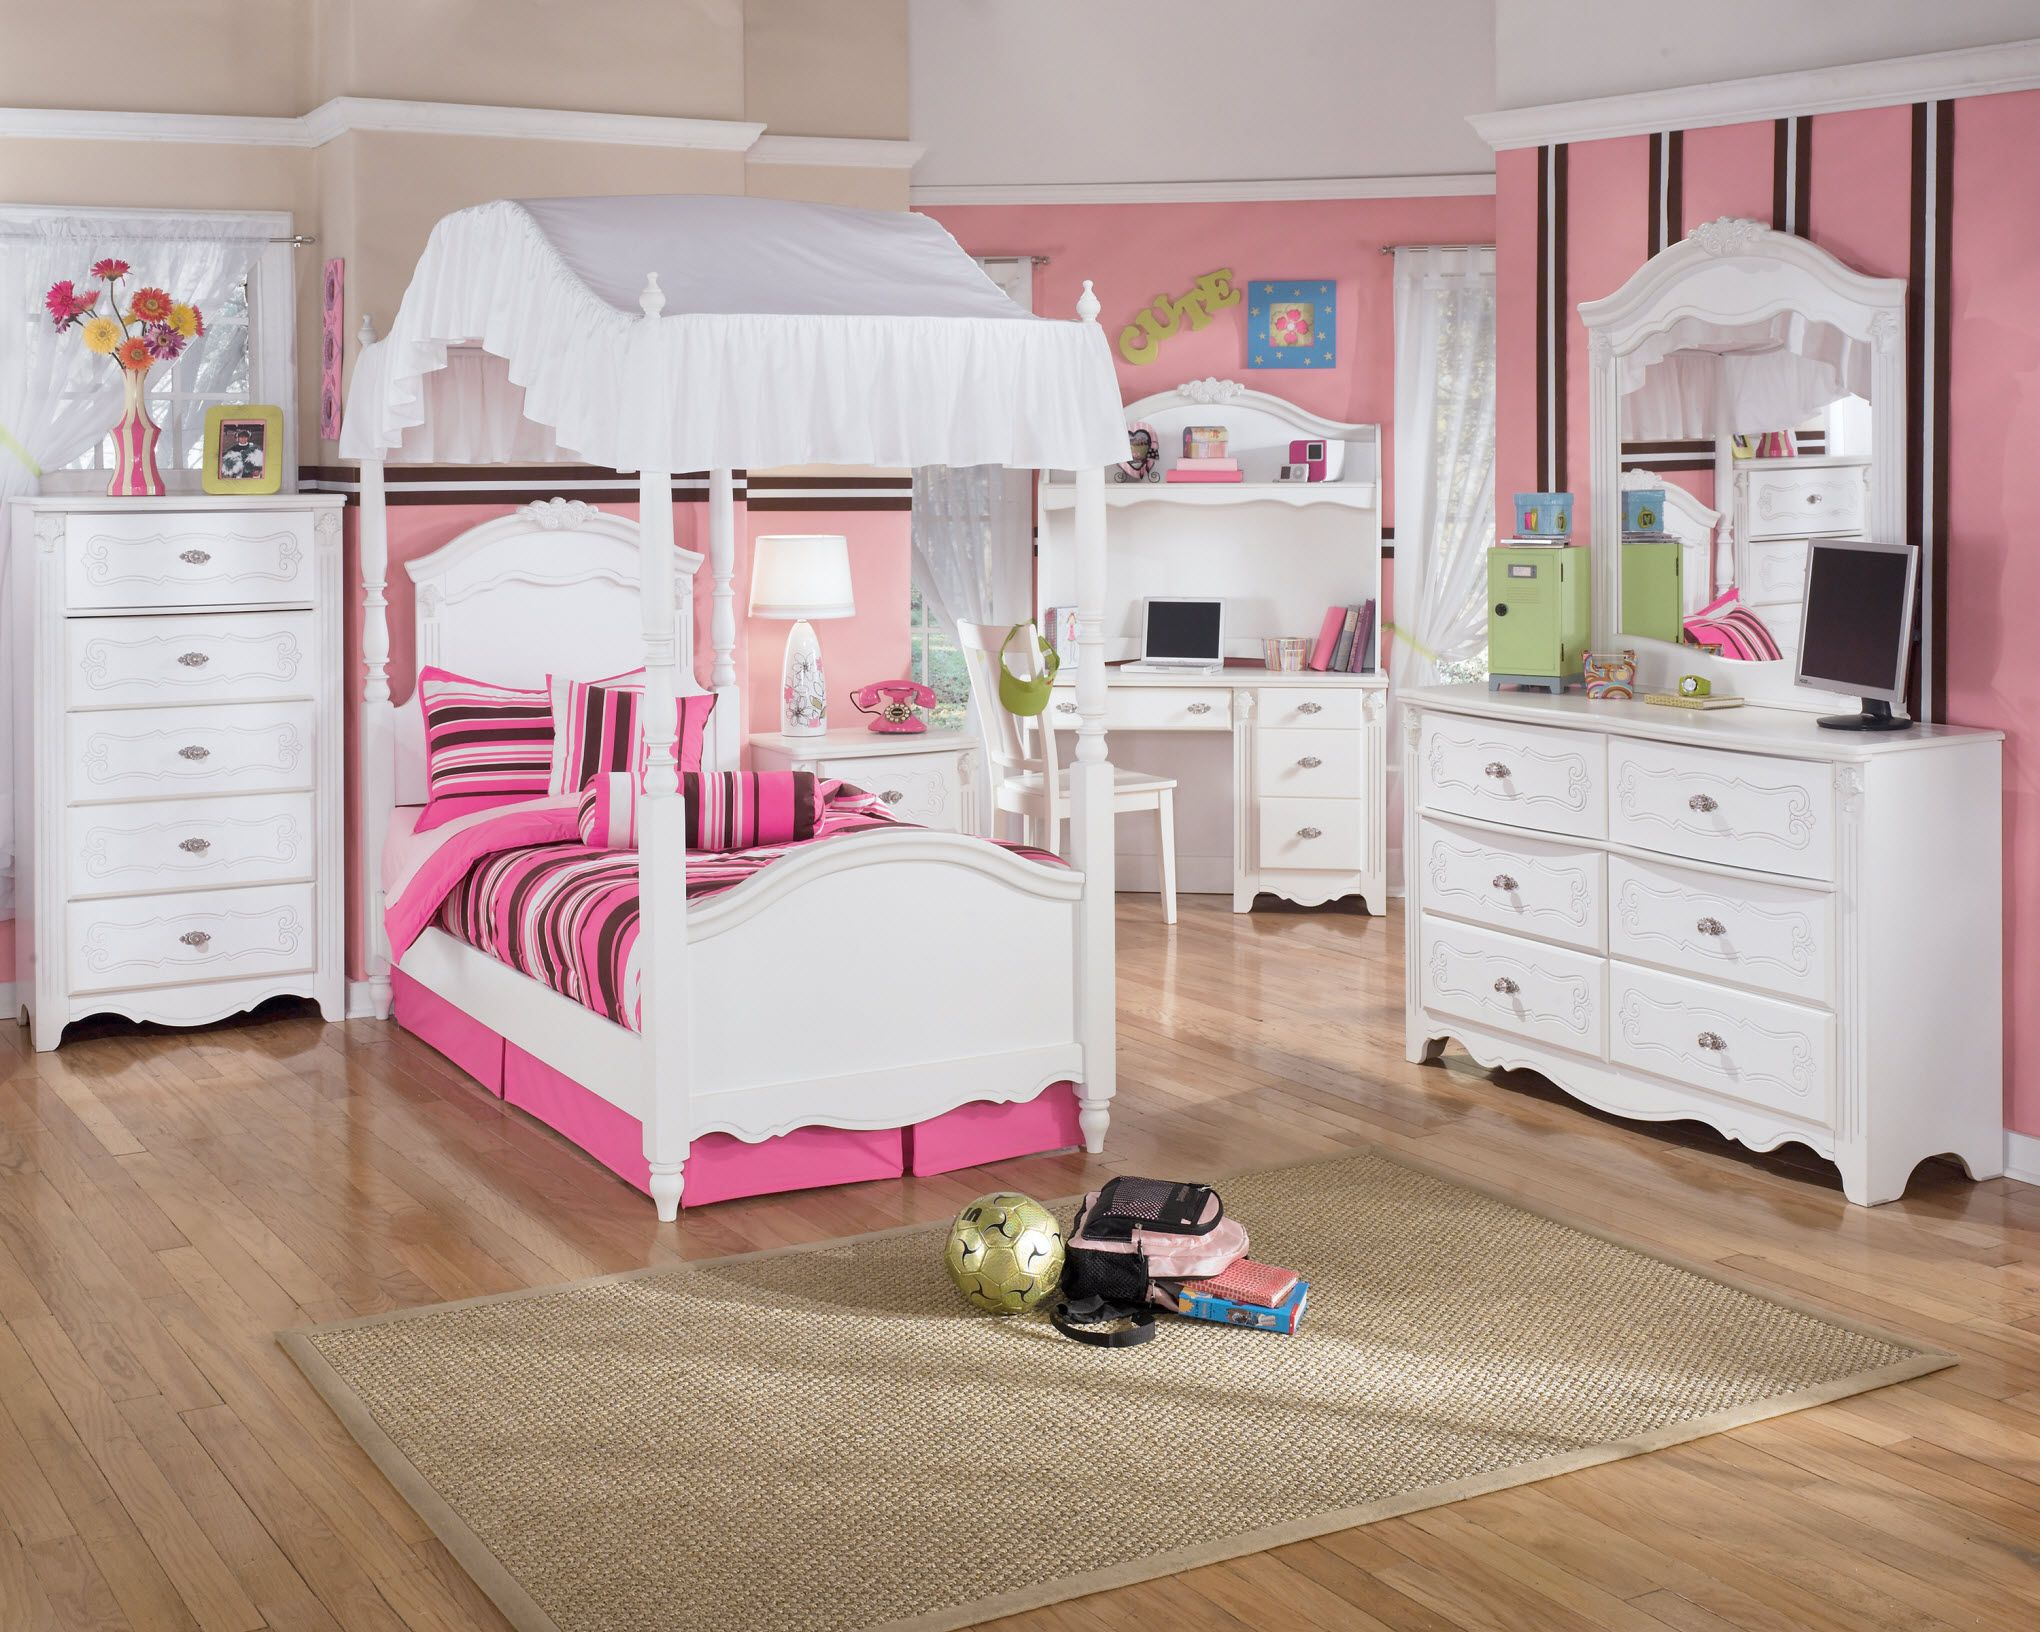 Kids bed furniture - Kid Bedroom Stripe Pattern And White Bedroom Furniture Set Theme Color For Your Kids How To